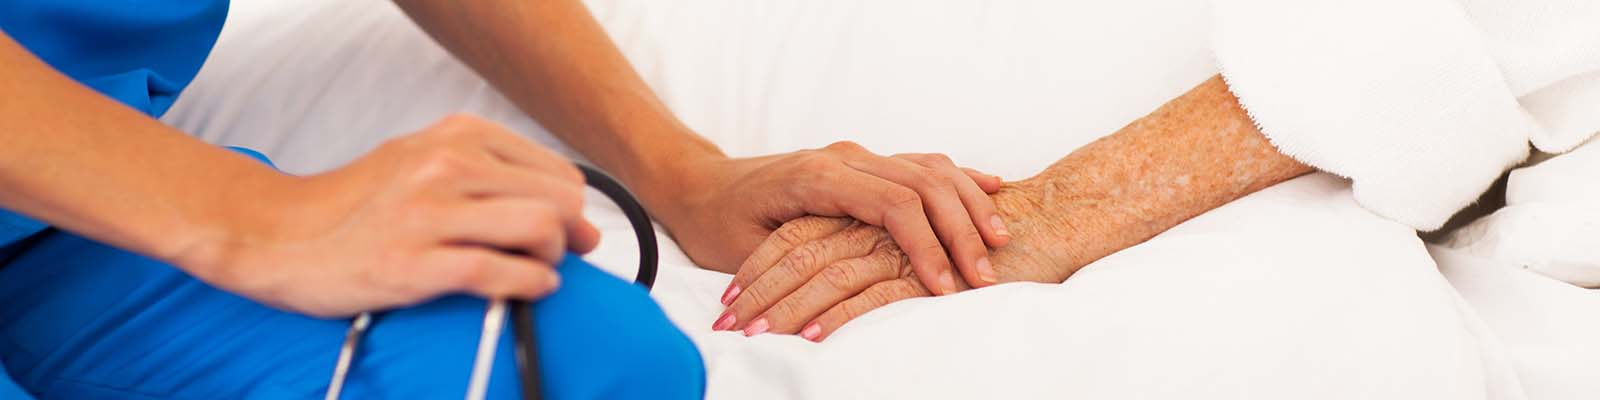 Provider holding a patient's hand